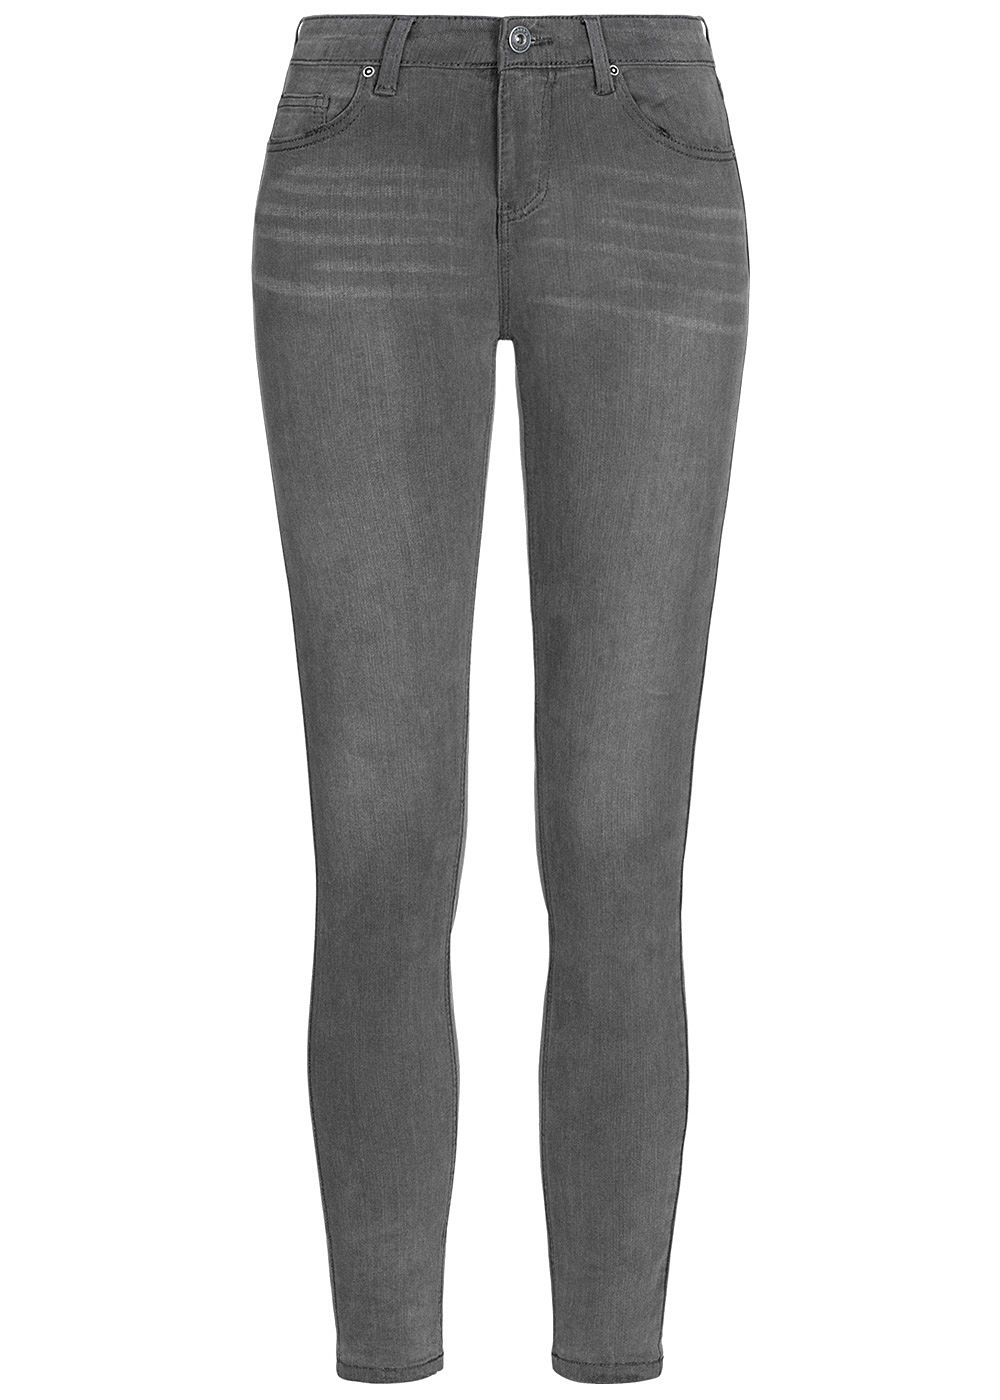 Hailys Damen Skinny Jeans Hose 5-Pockets grau denim - Art.-Nr.: 20083859